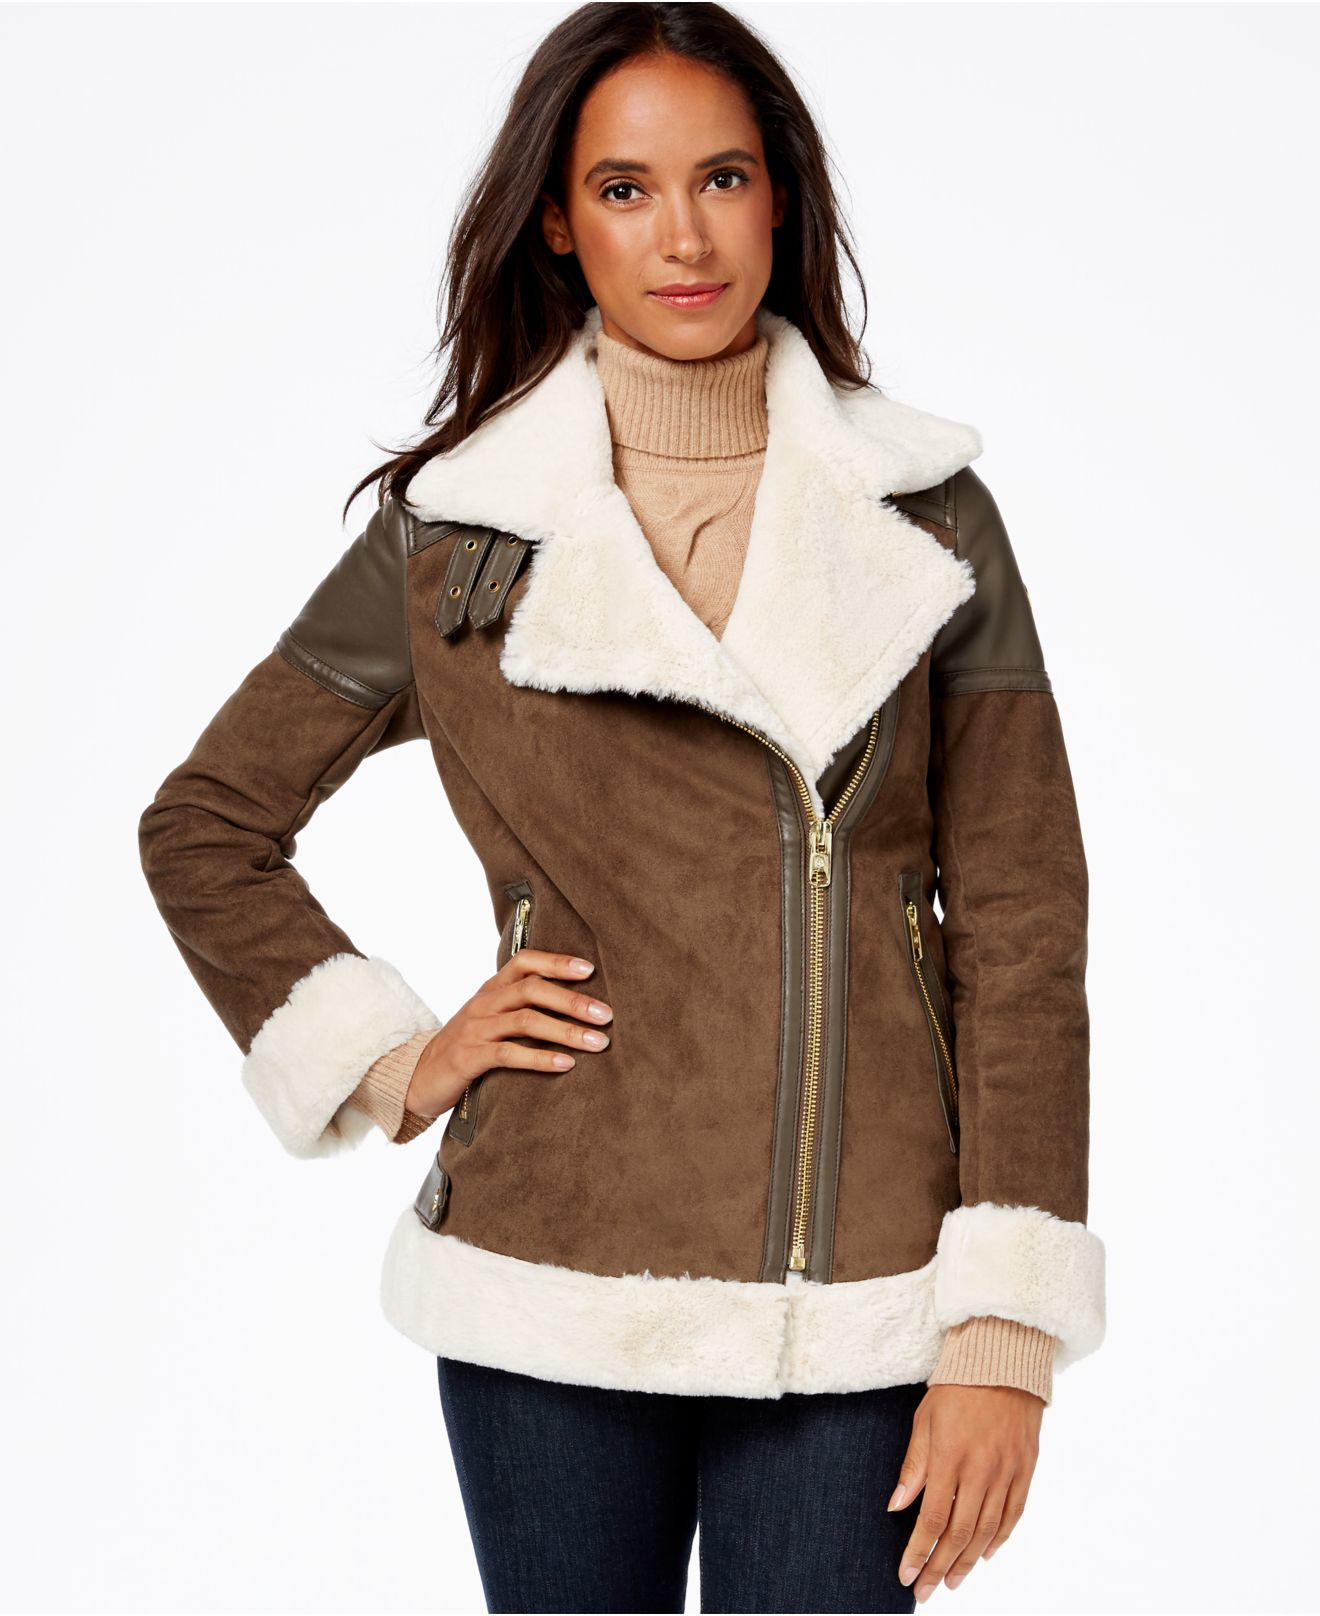 55e634ae821 Lyst Michael Kors Faux Leather Trim Shearling Moto. Michael Kors Brown  Leather Jacket Macy S Cairoamani Com